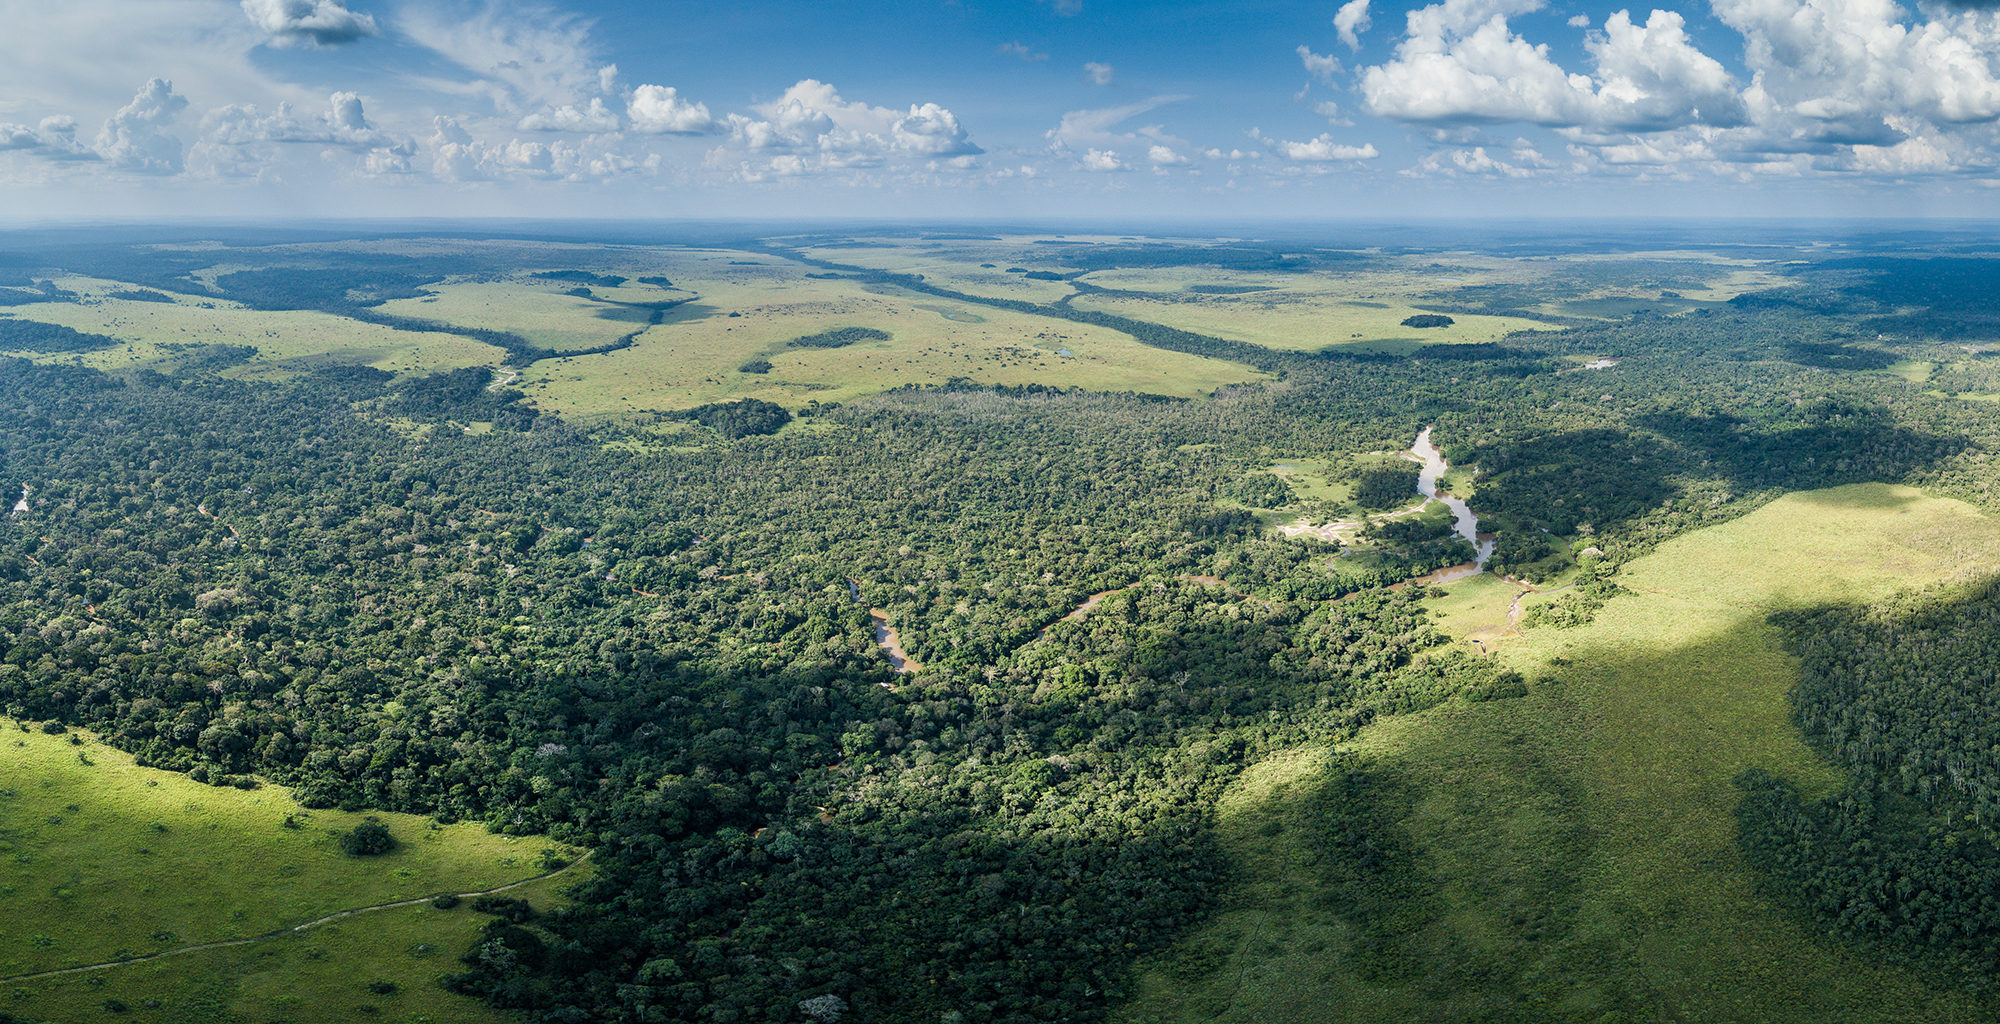 Republic-of-Congo-Odzala-Aerial